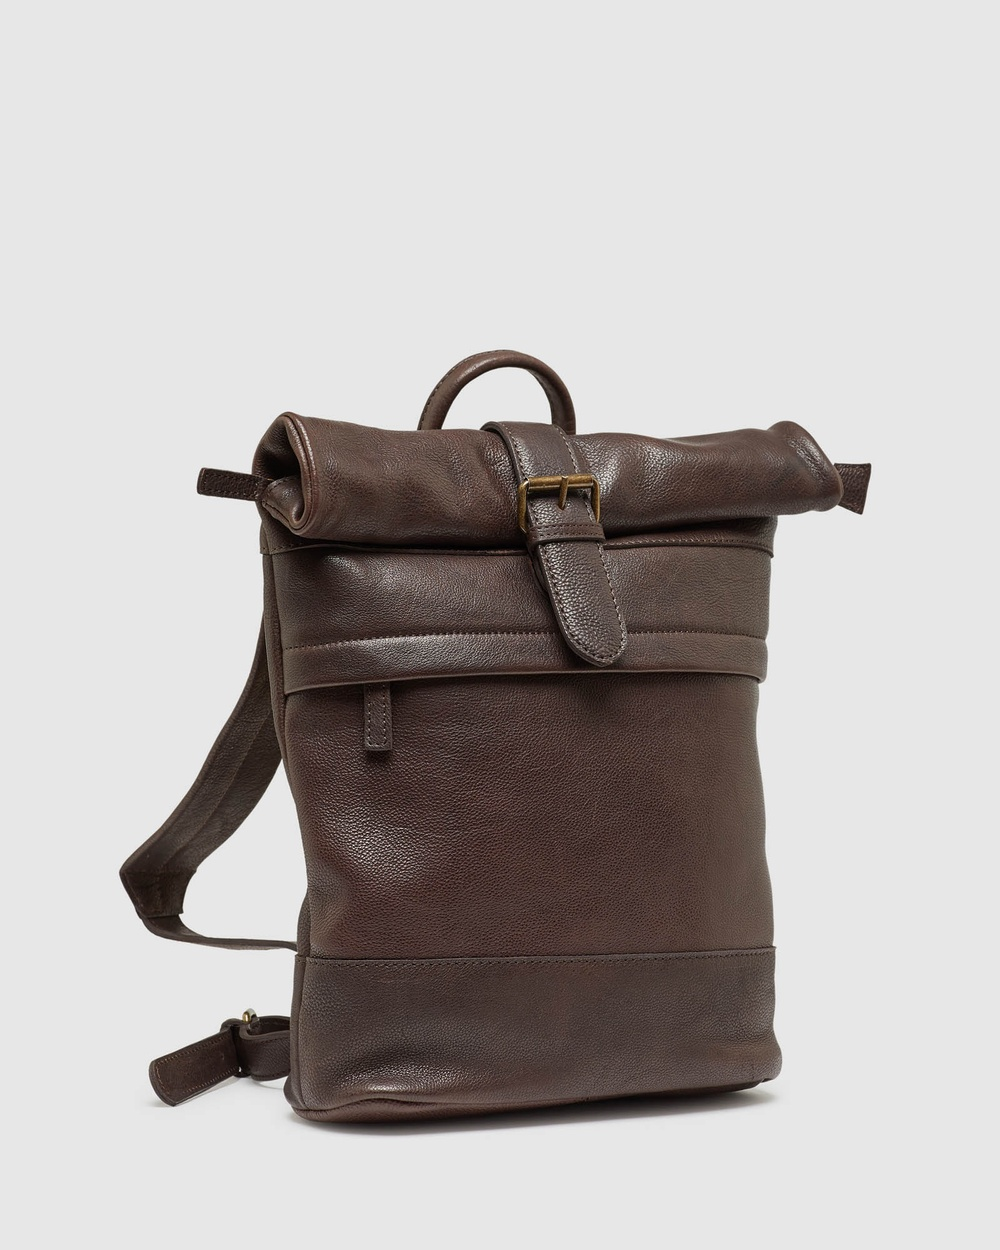 Oxford Angus Leather Back Pack Bag Bags Brown